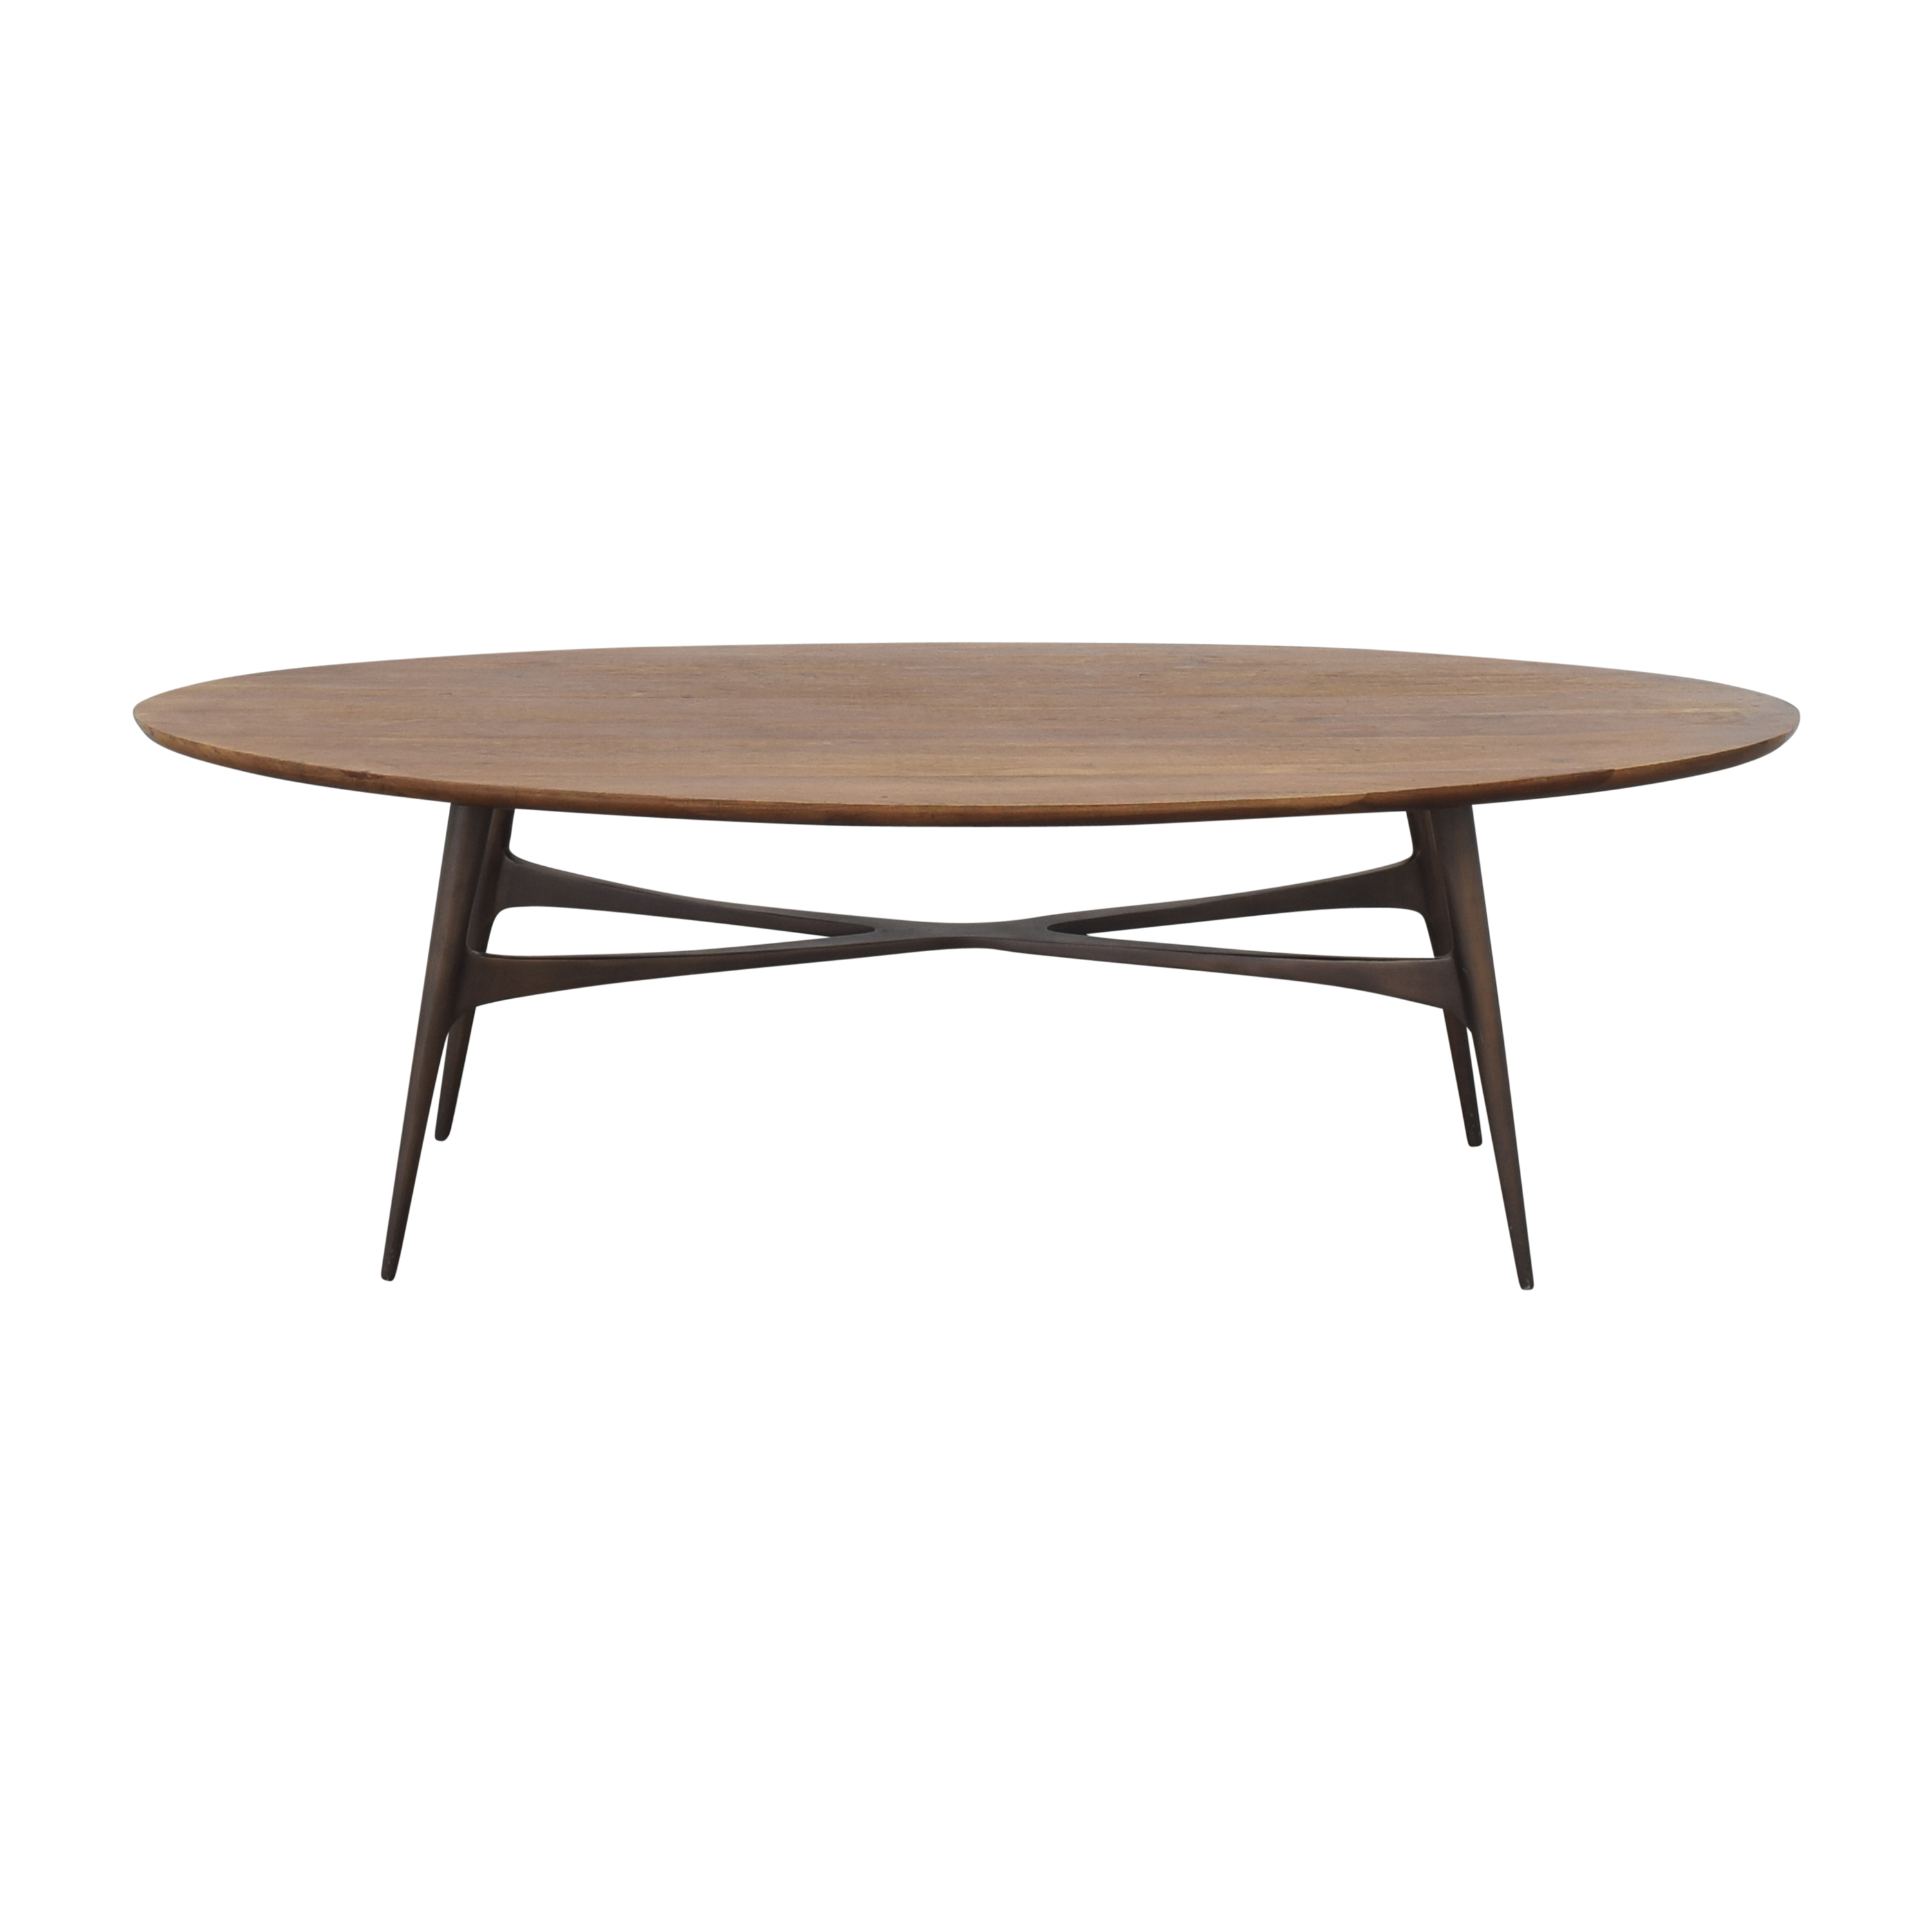 Crate & Barrel Bel Air Oval Coffee Table / Coffee Tables